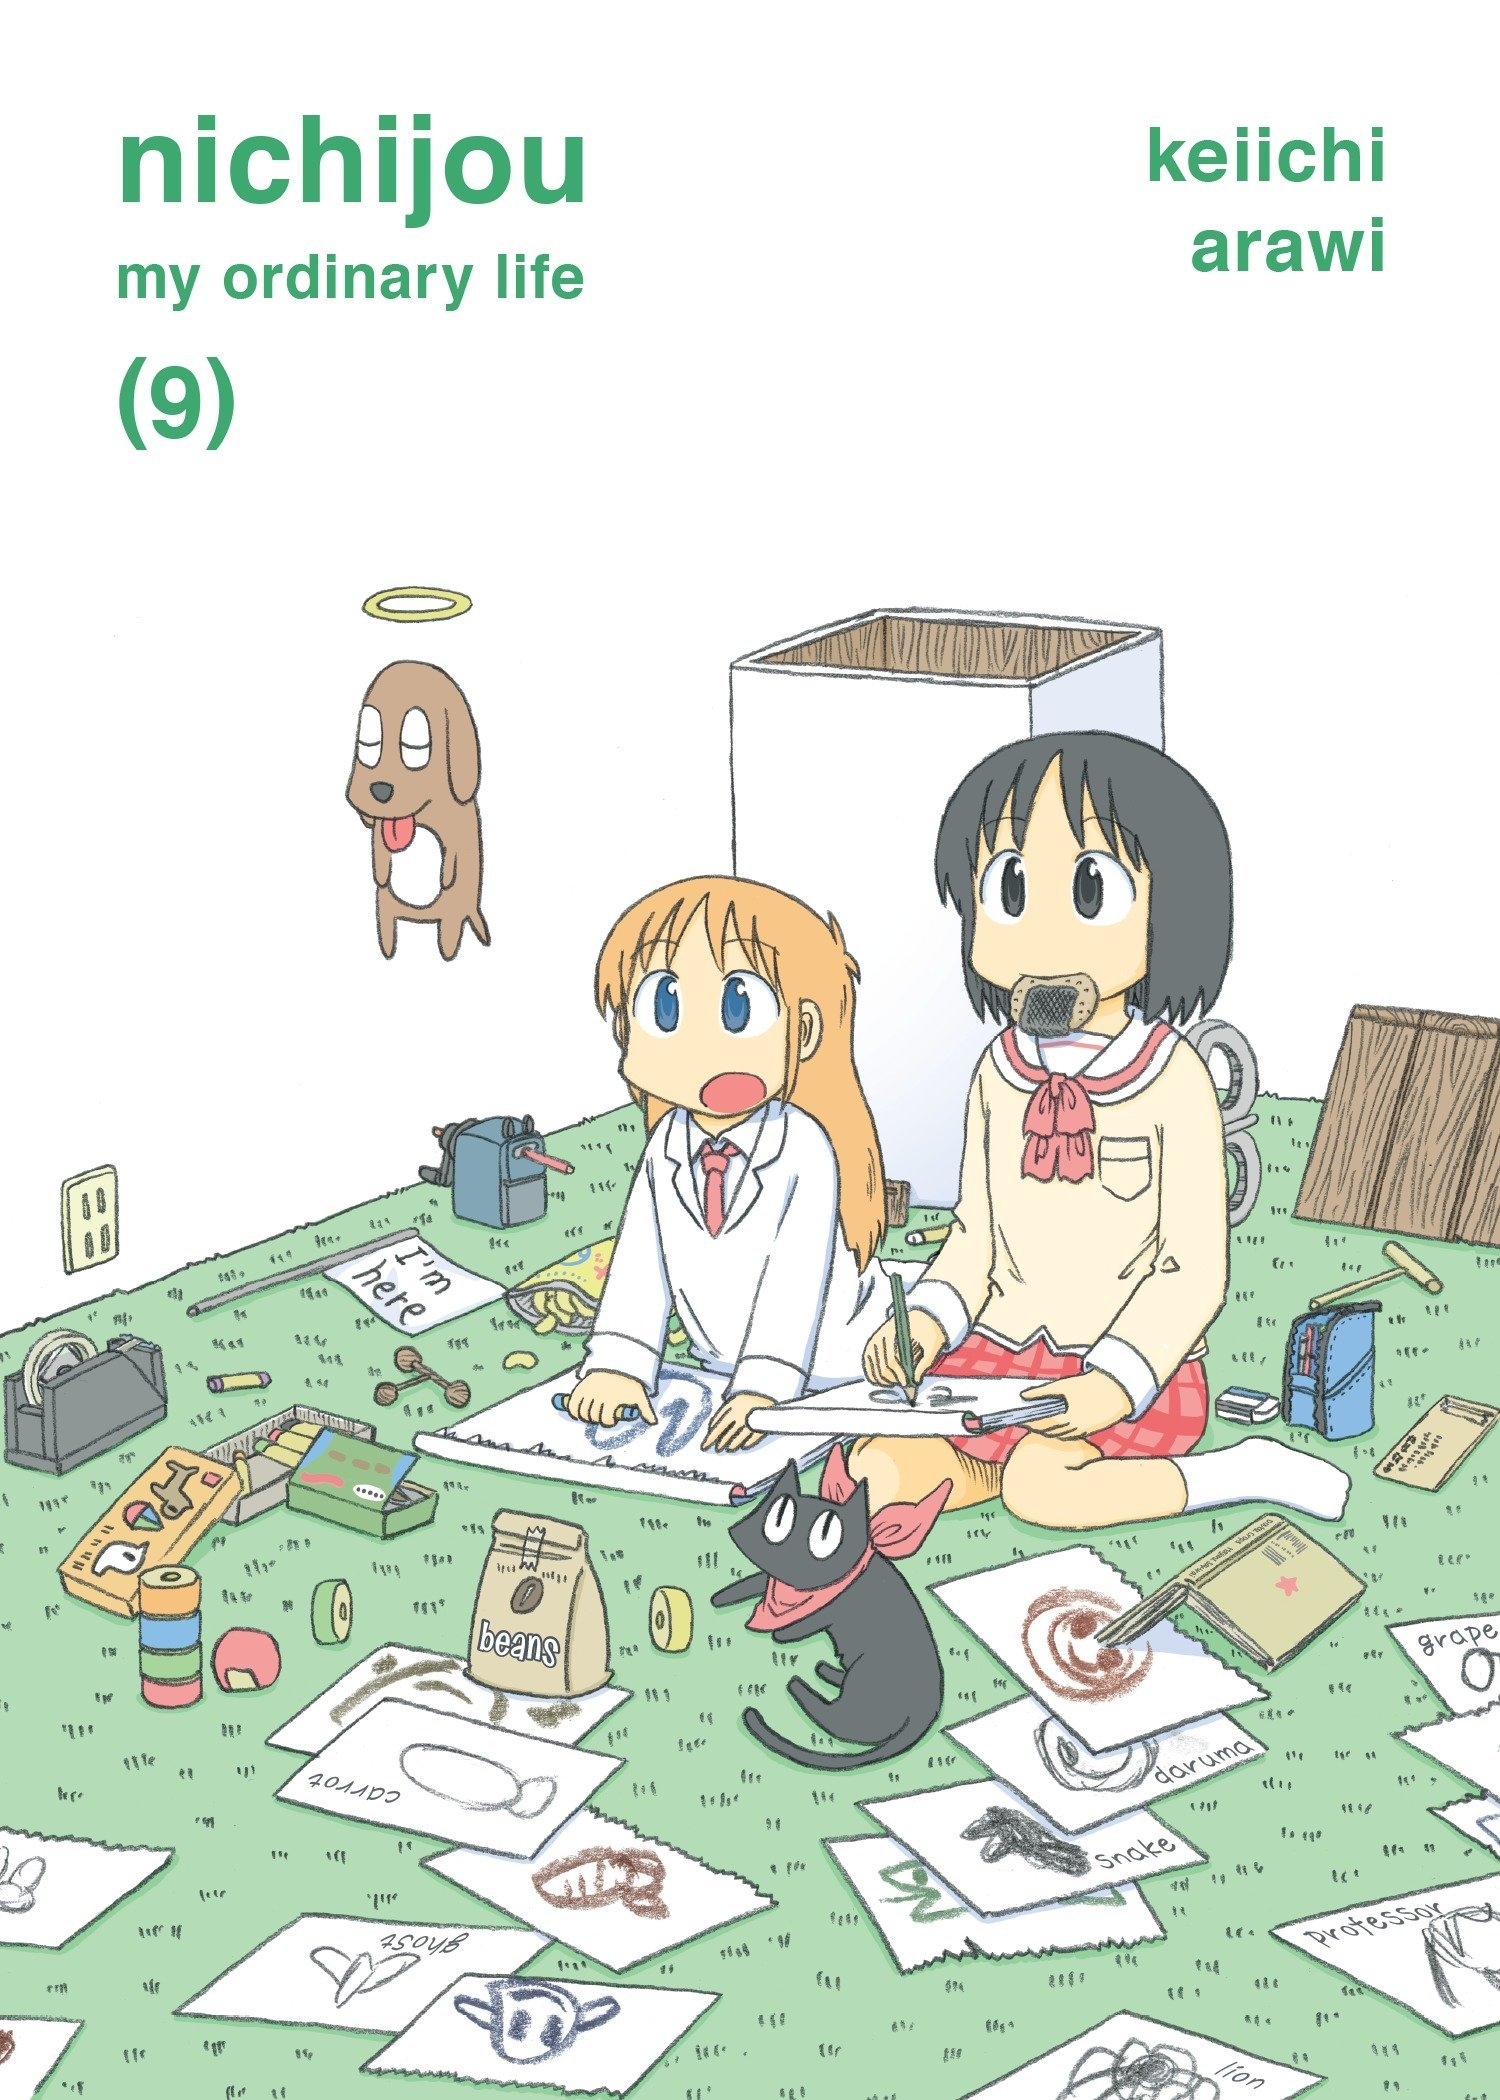 Nichijou Seaon 2: Renewed or Cancelled? Updates, Expectations and Cast